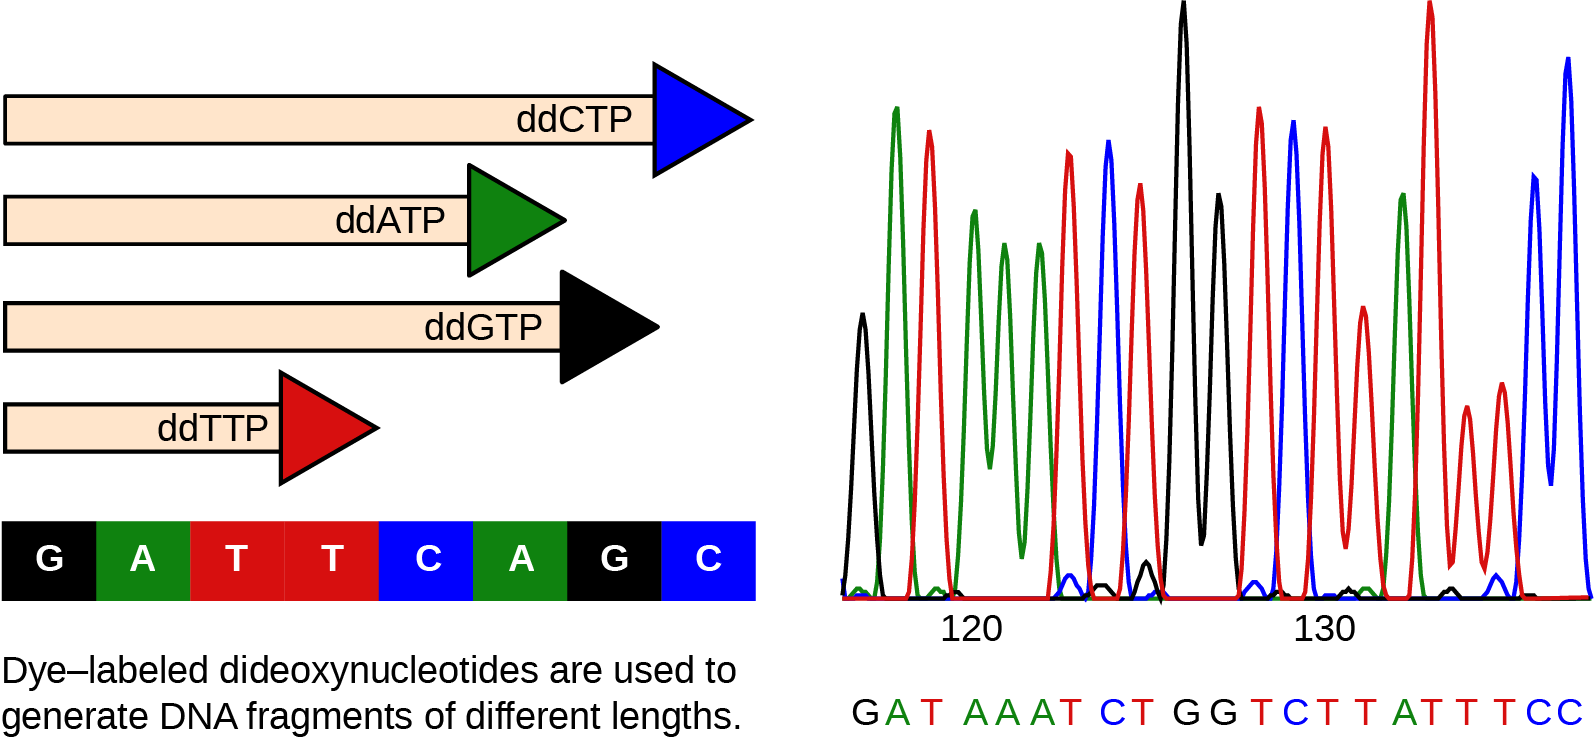 The left part of this illustration shows a parent strand of D N A with the sequence G A T T C A G C, and four daughter strands, each of which was made in the presence of a different dideoxynucleotide: lower case d lower case d upper case A upper case T upper case P, and lower case d lower case d upper case C upper case T upper case P, and lower d lower d upper G upper T upper P, or lower d lower d upper T upper T upper P. The growing chain terminates when a lower d lower d upper N T P is incorporated, resulting in daughter strands of different lengths. The right part of this image shows the separation of the D N A fragments on the basis of size. Each lower d lower d upper N T P is fluorescently labeled with a different color so that the sequence can be read by the size of each fragment and its color.